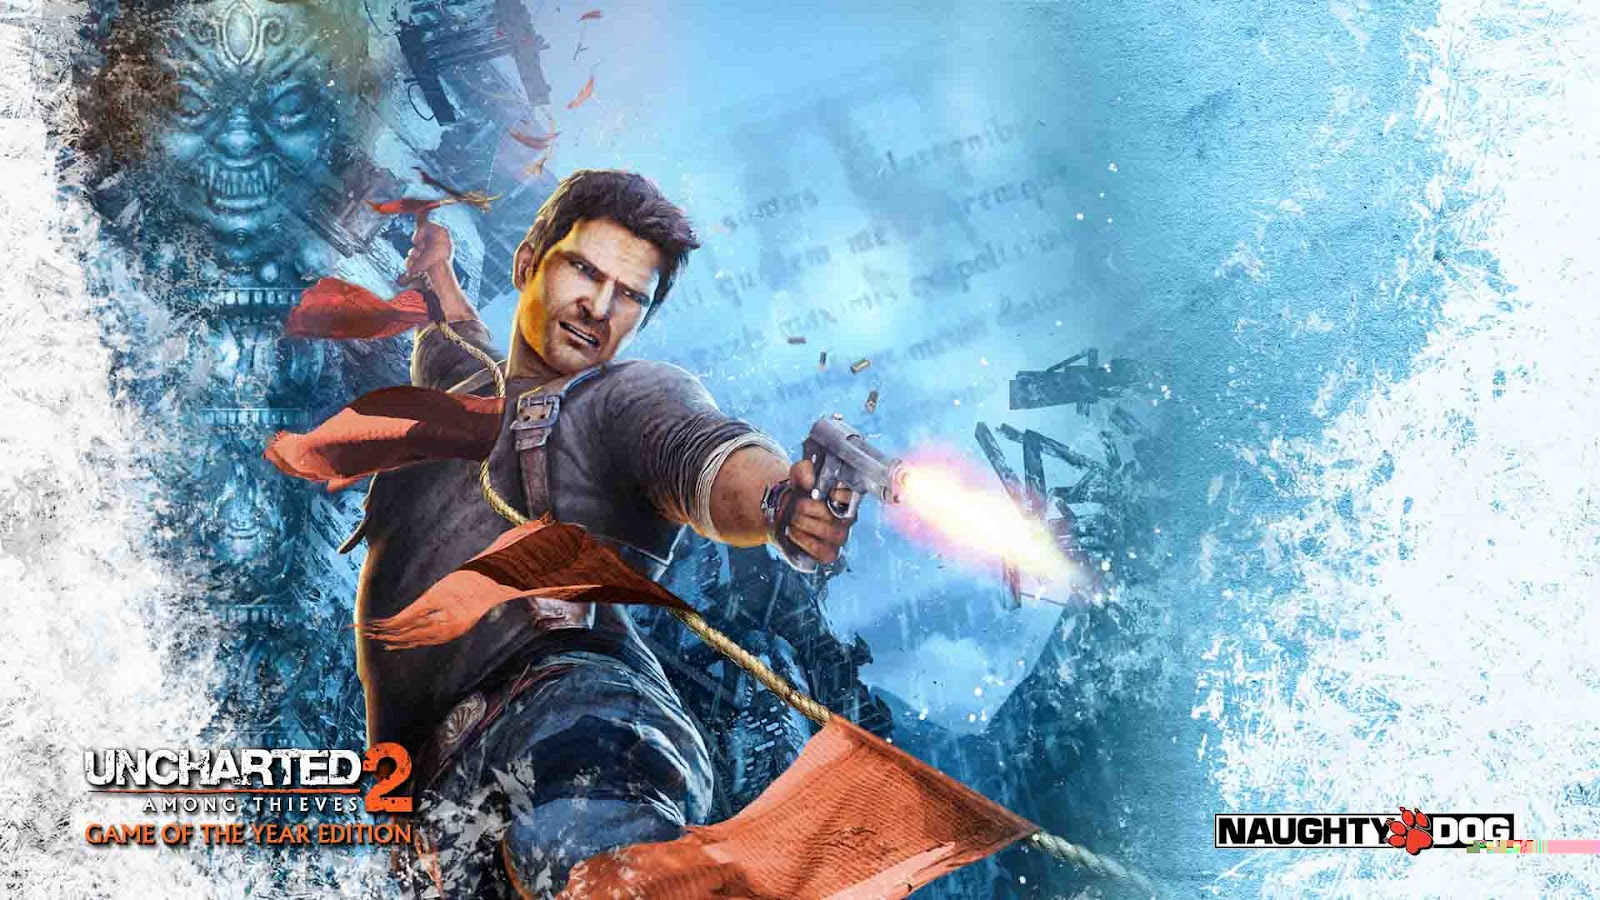 Free Download Wallpaper Name Uncharted 2 Among Thieves Wallpaper